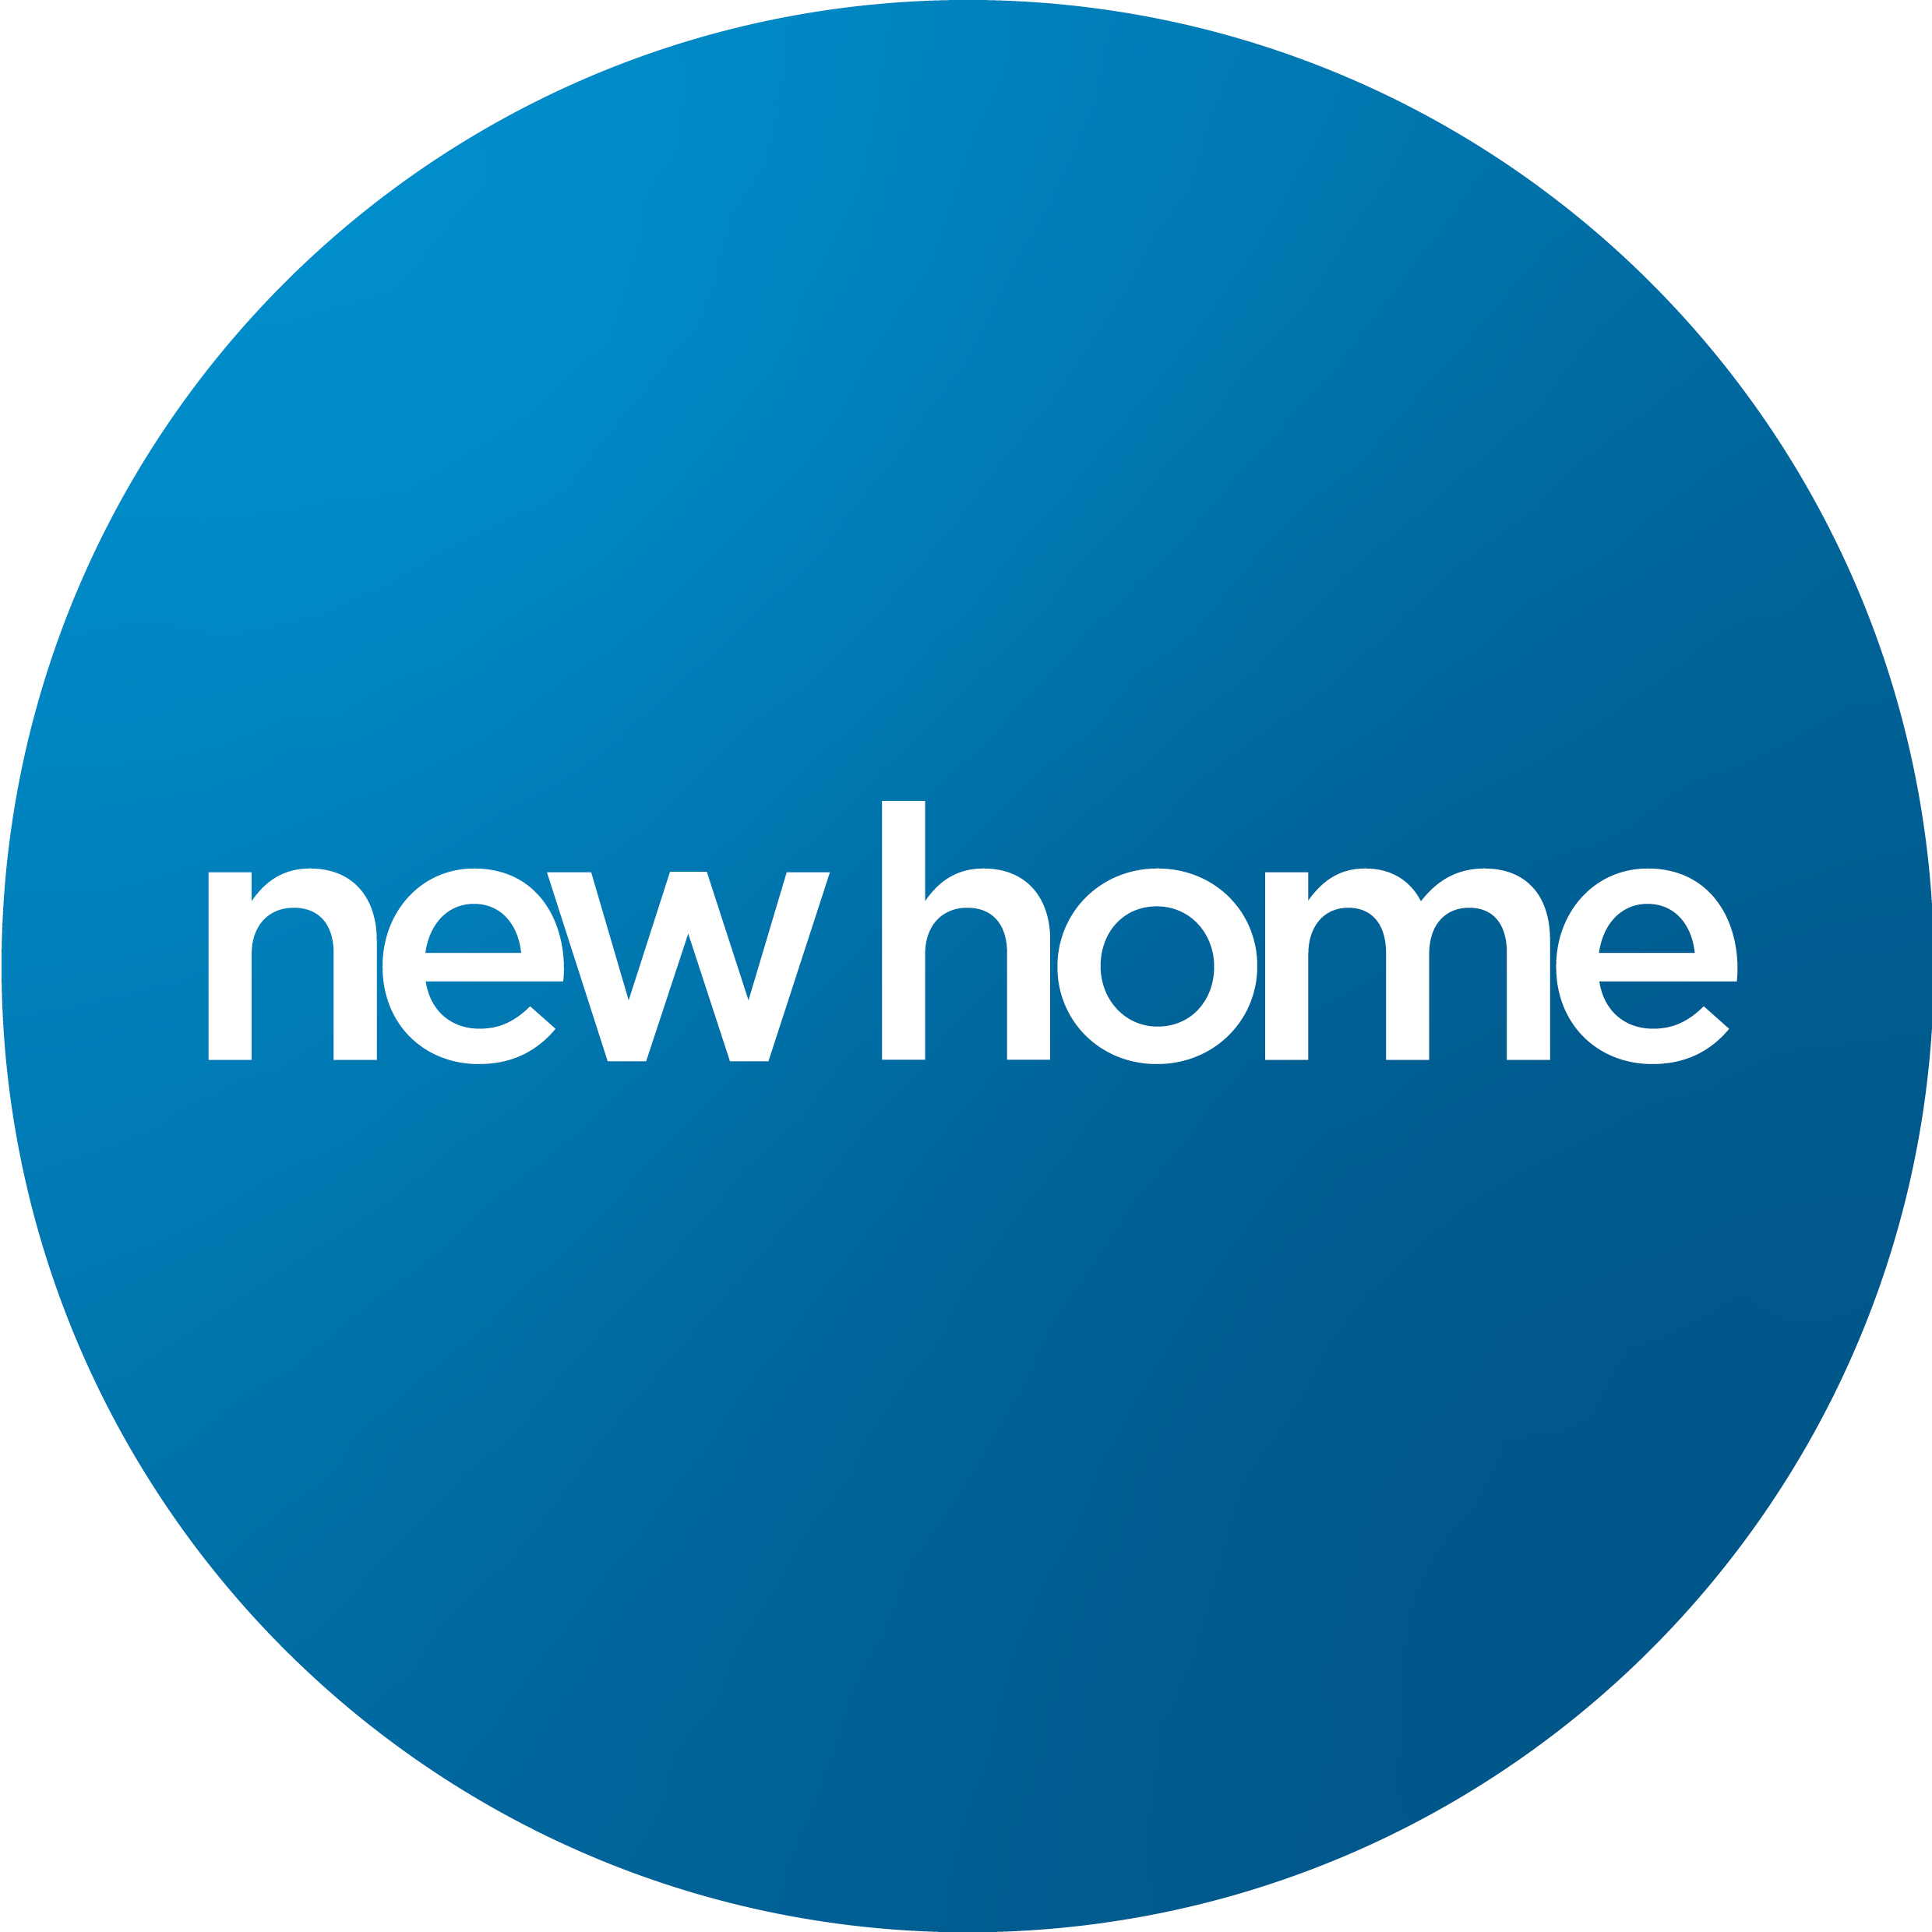 Dracénie Provence Verdon Agglomération - New Home - agence immobiliere